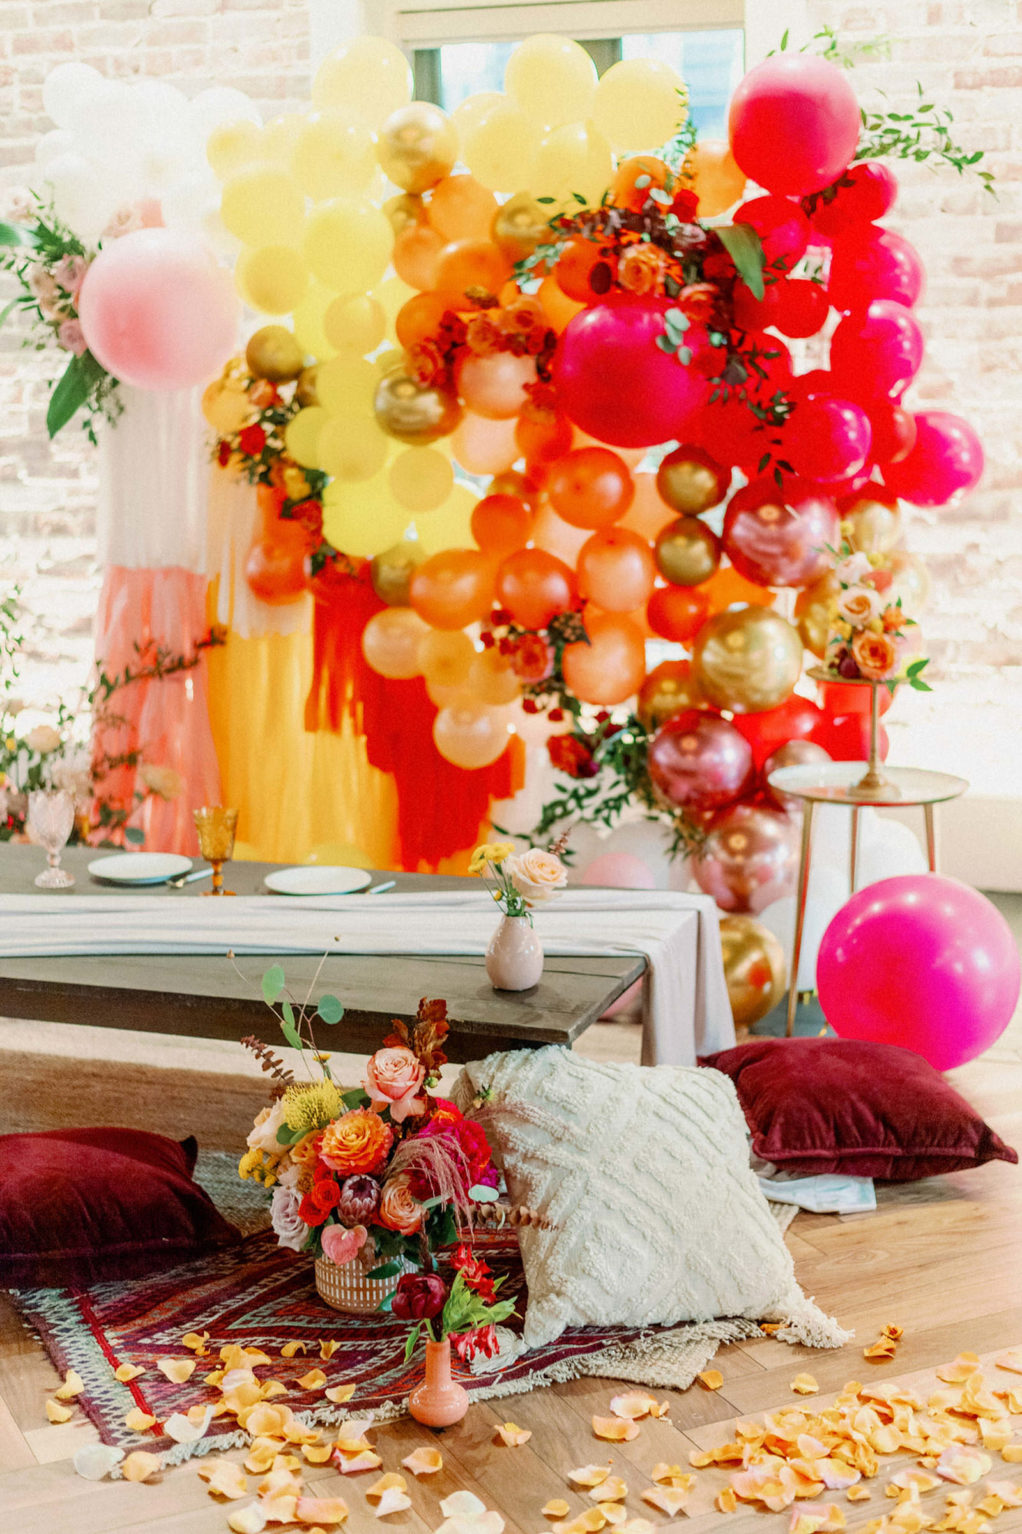 Whimsical and Colorful Wedding Reception Decor, Low Boho Style Picnic Table with Neutral Silk Table Linen, Red, Yellow and Gold Cushions, Woven Basket, Orange, Yellow, Pink, Gold and Fuschia Balloon and Fringe Backdrop, Tall Candlesticks, White Rose Petals   Tampa Bay Wedding Photographer Dewitt for Love   Wedding Linen Rental Kate Ryan Event Rentals   St. Pete Modern Industrial Wedding Venue Red Mesa Events